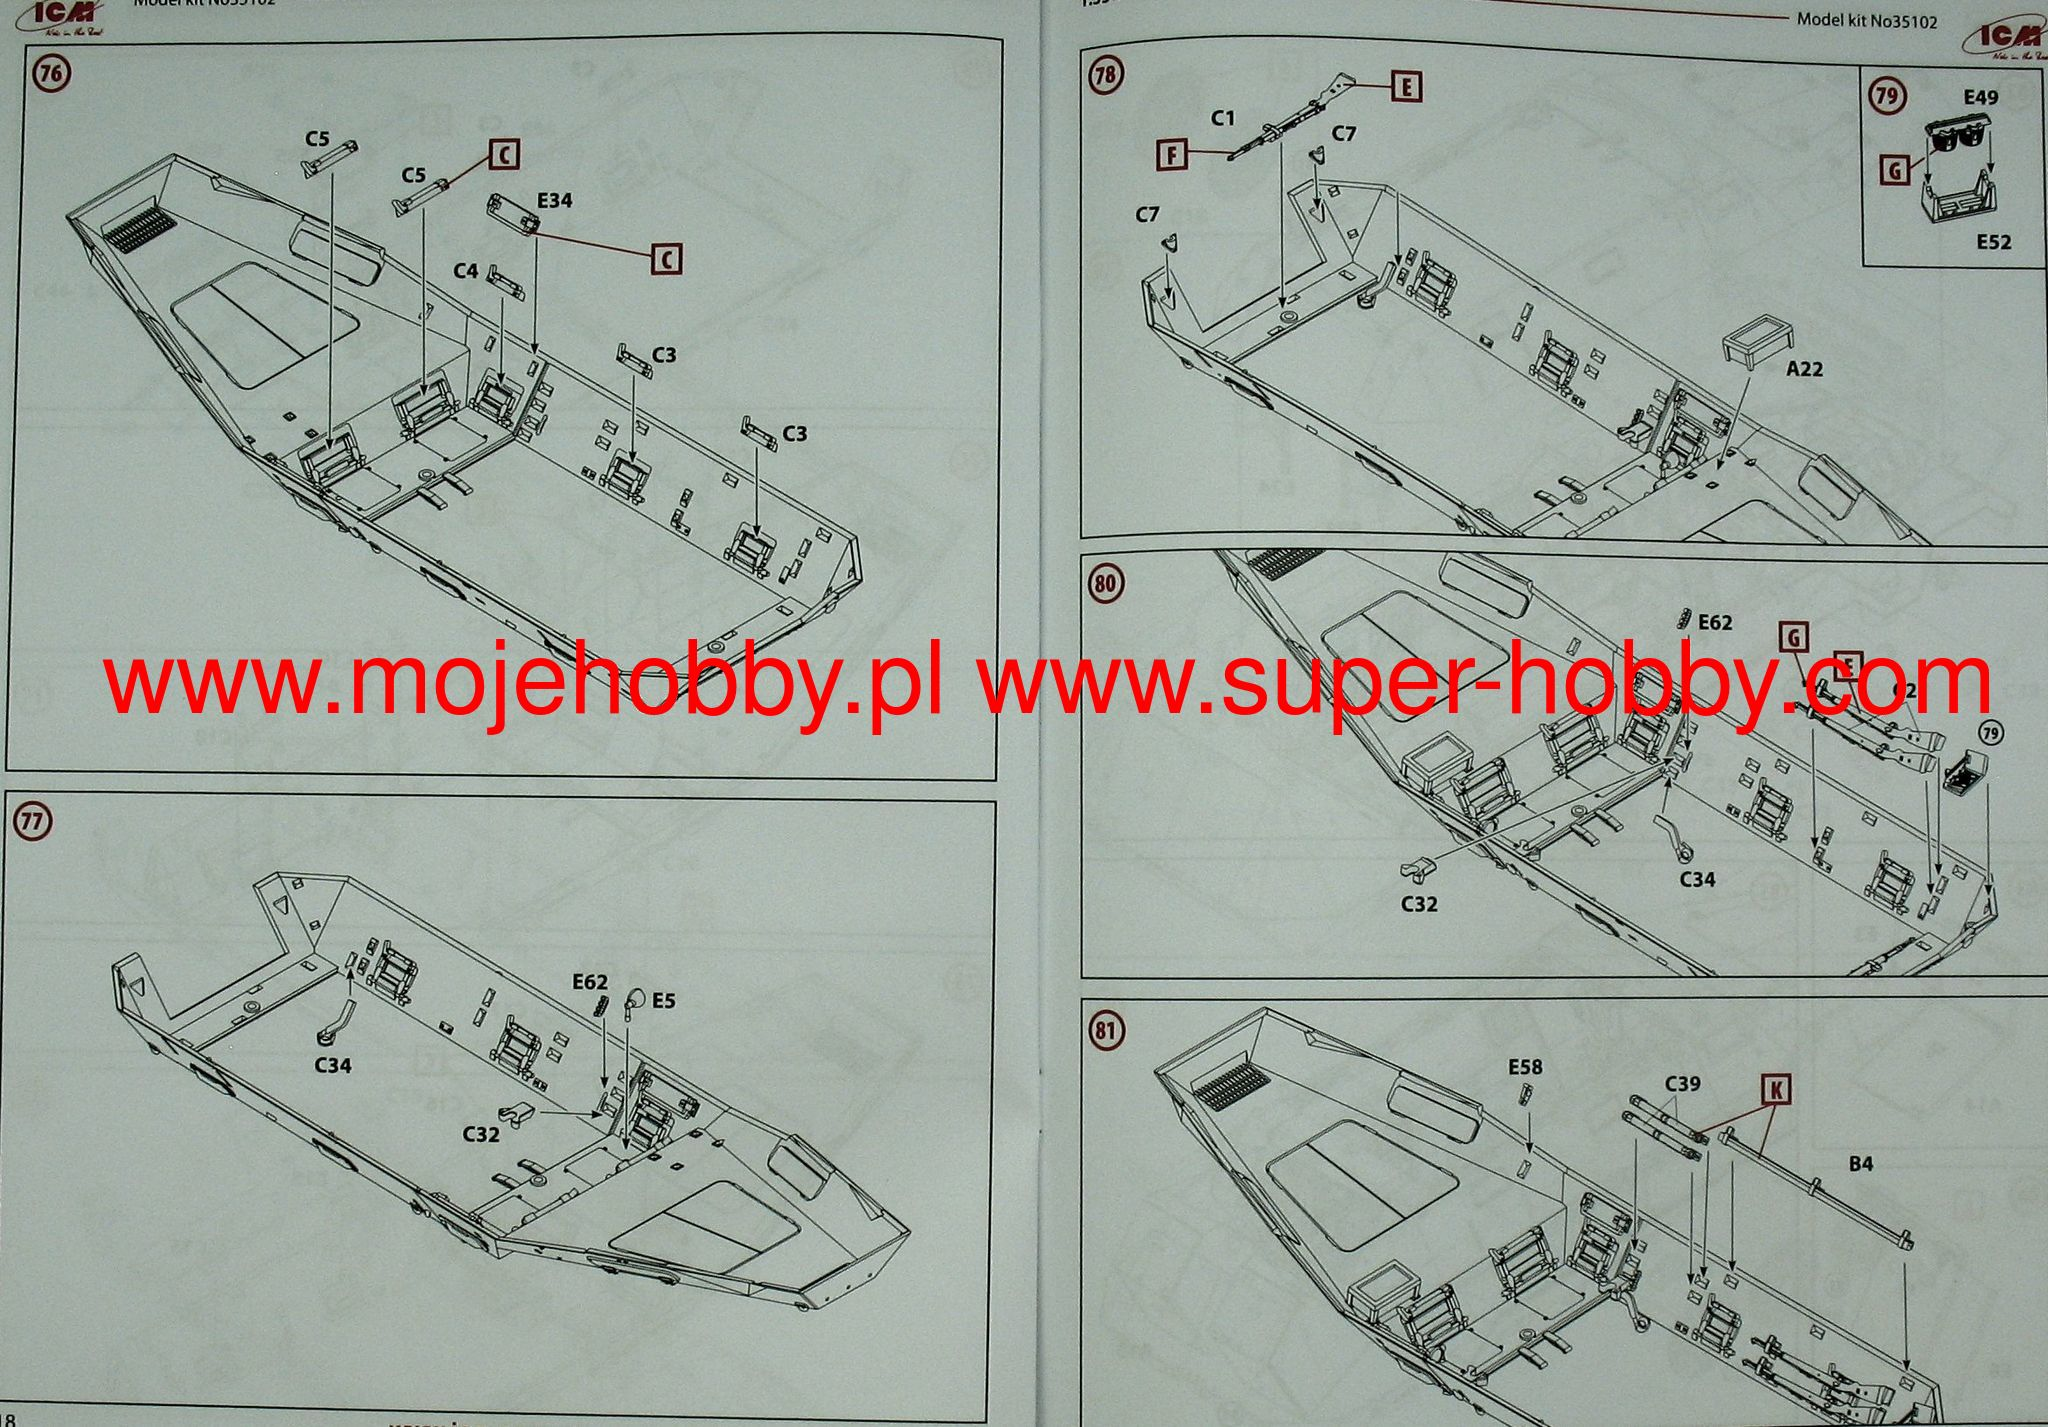 Icm 251 Wiring Diagram Archive Of Automotive German Symbols On Diagrams Sd Kfz 6 Ausf A Wwii Armoured Command Vehicle 35102 Rh Super Hobby